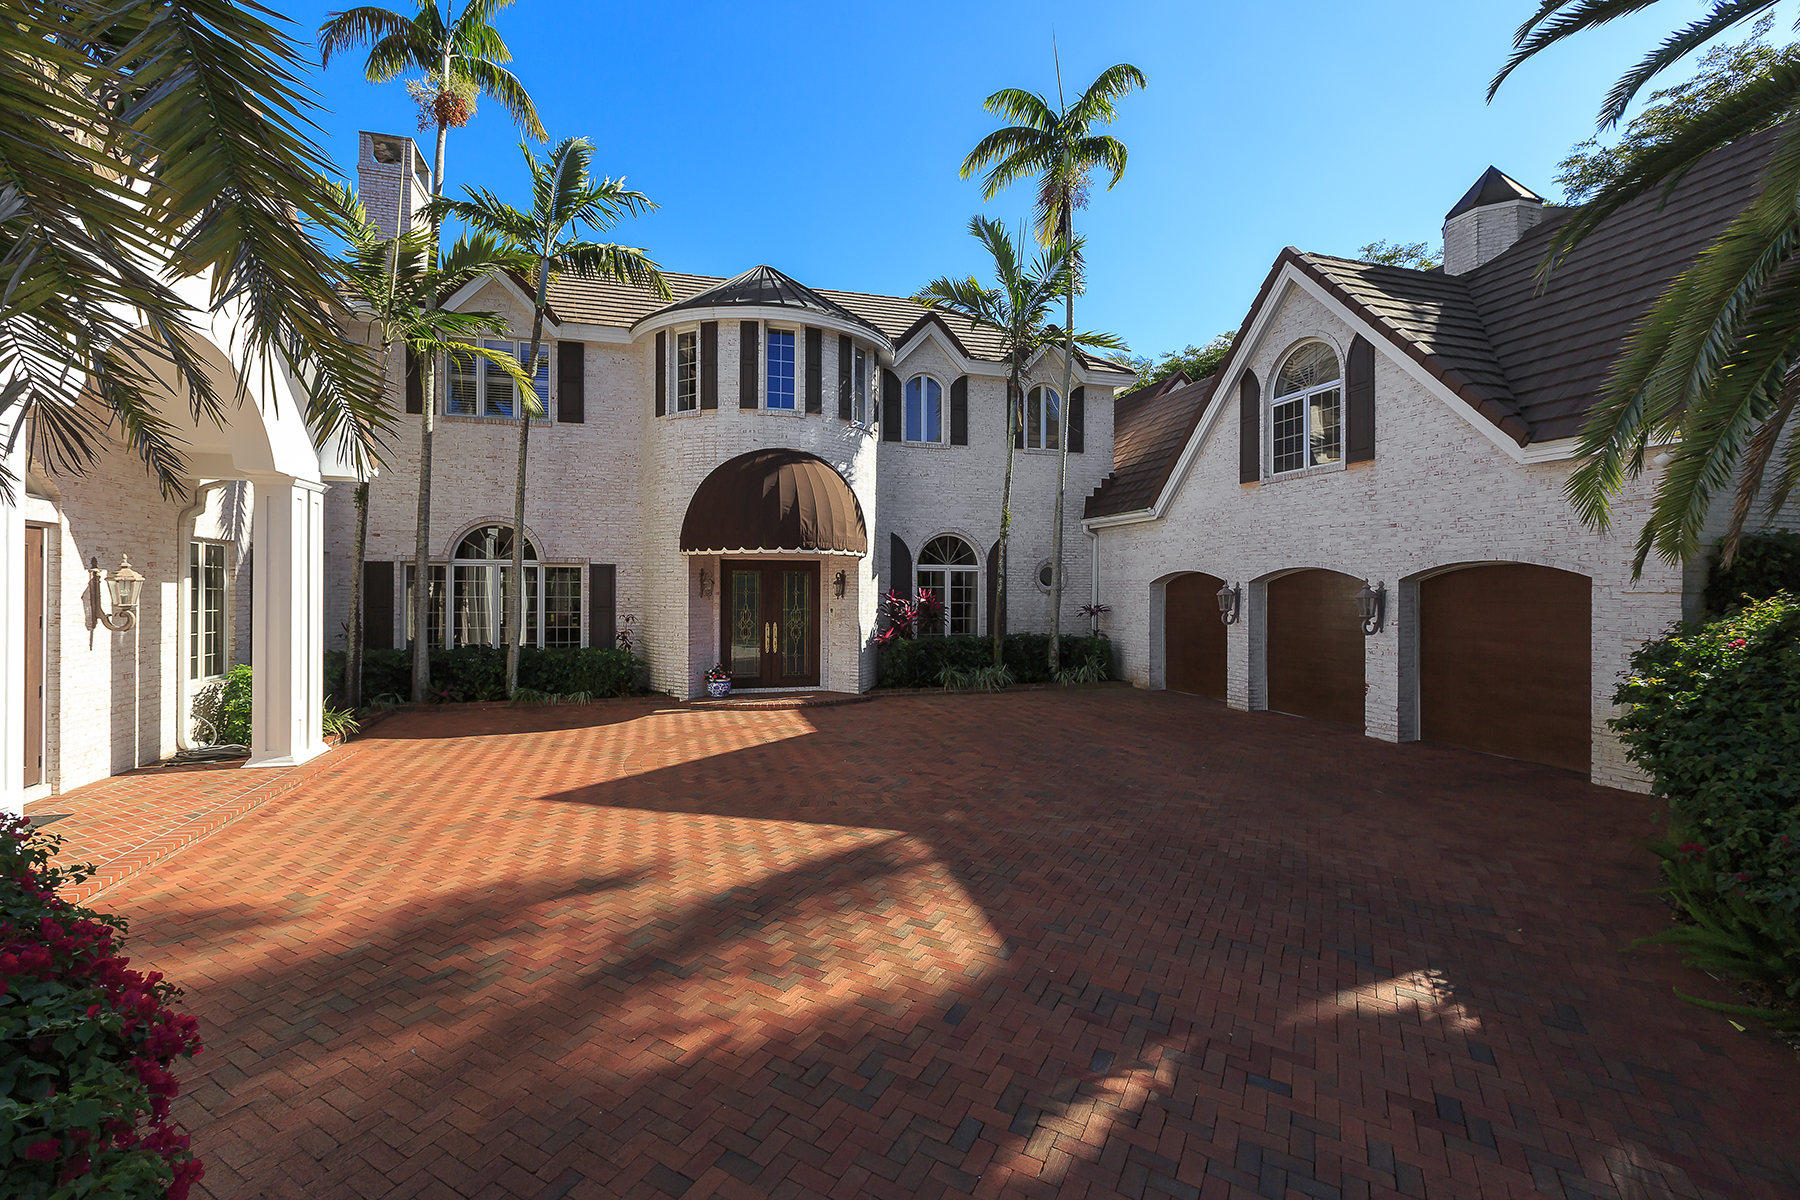 Single Family Home for Sale at PELICAN BAY - BAY COLONY SHORES 356 Cromwell Ct, Naples, Florida 34108 United States